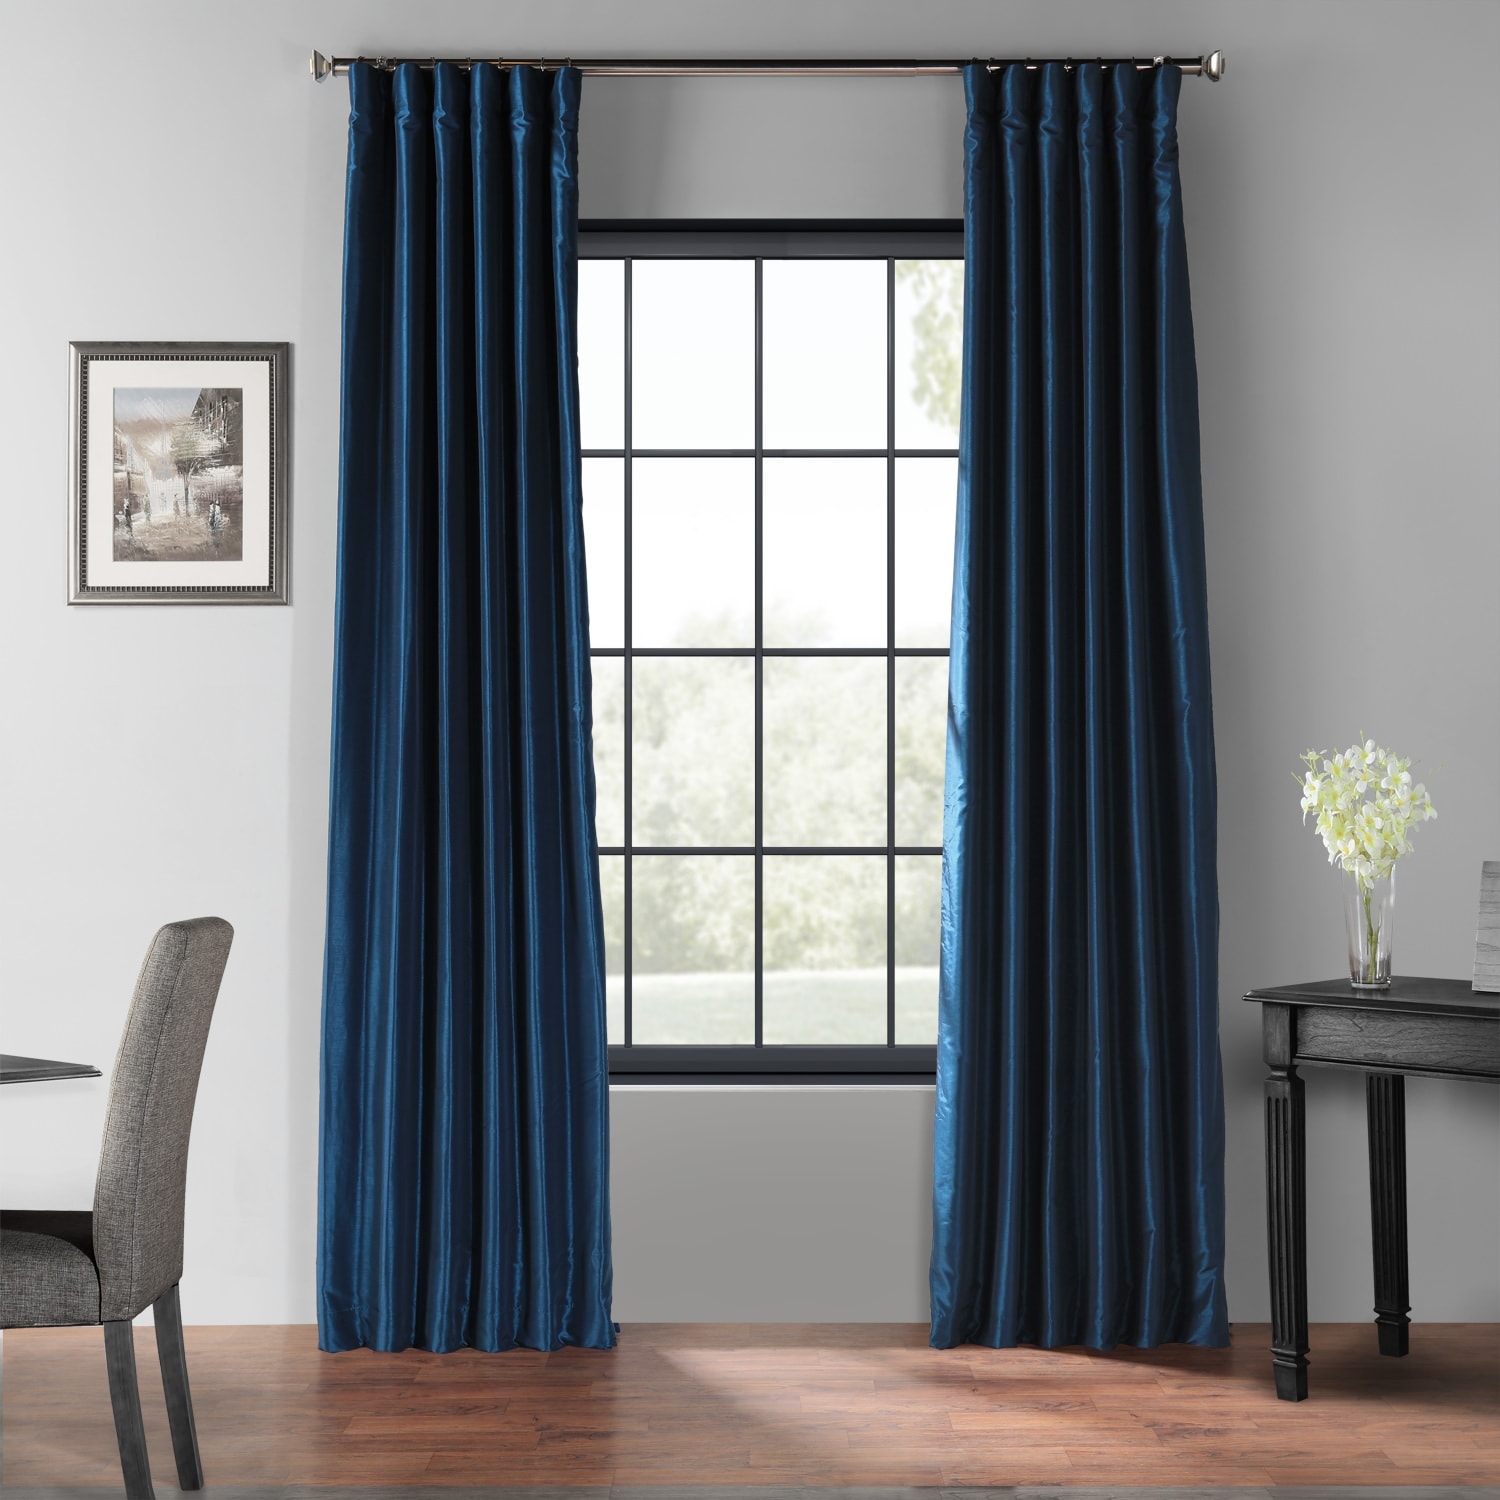 Captain's Blue Blackout Vintage Textured Faux Dupioni Silk Curtain